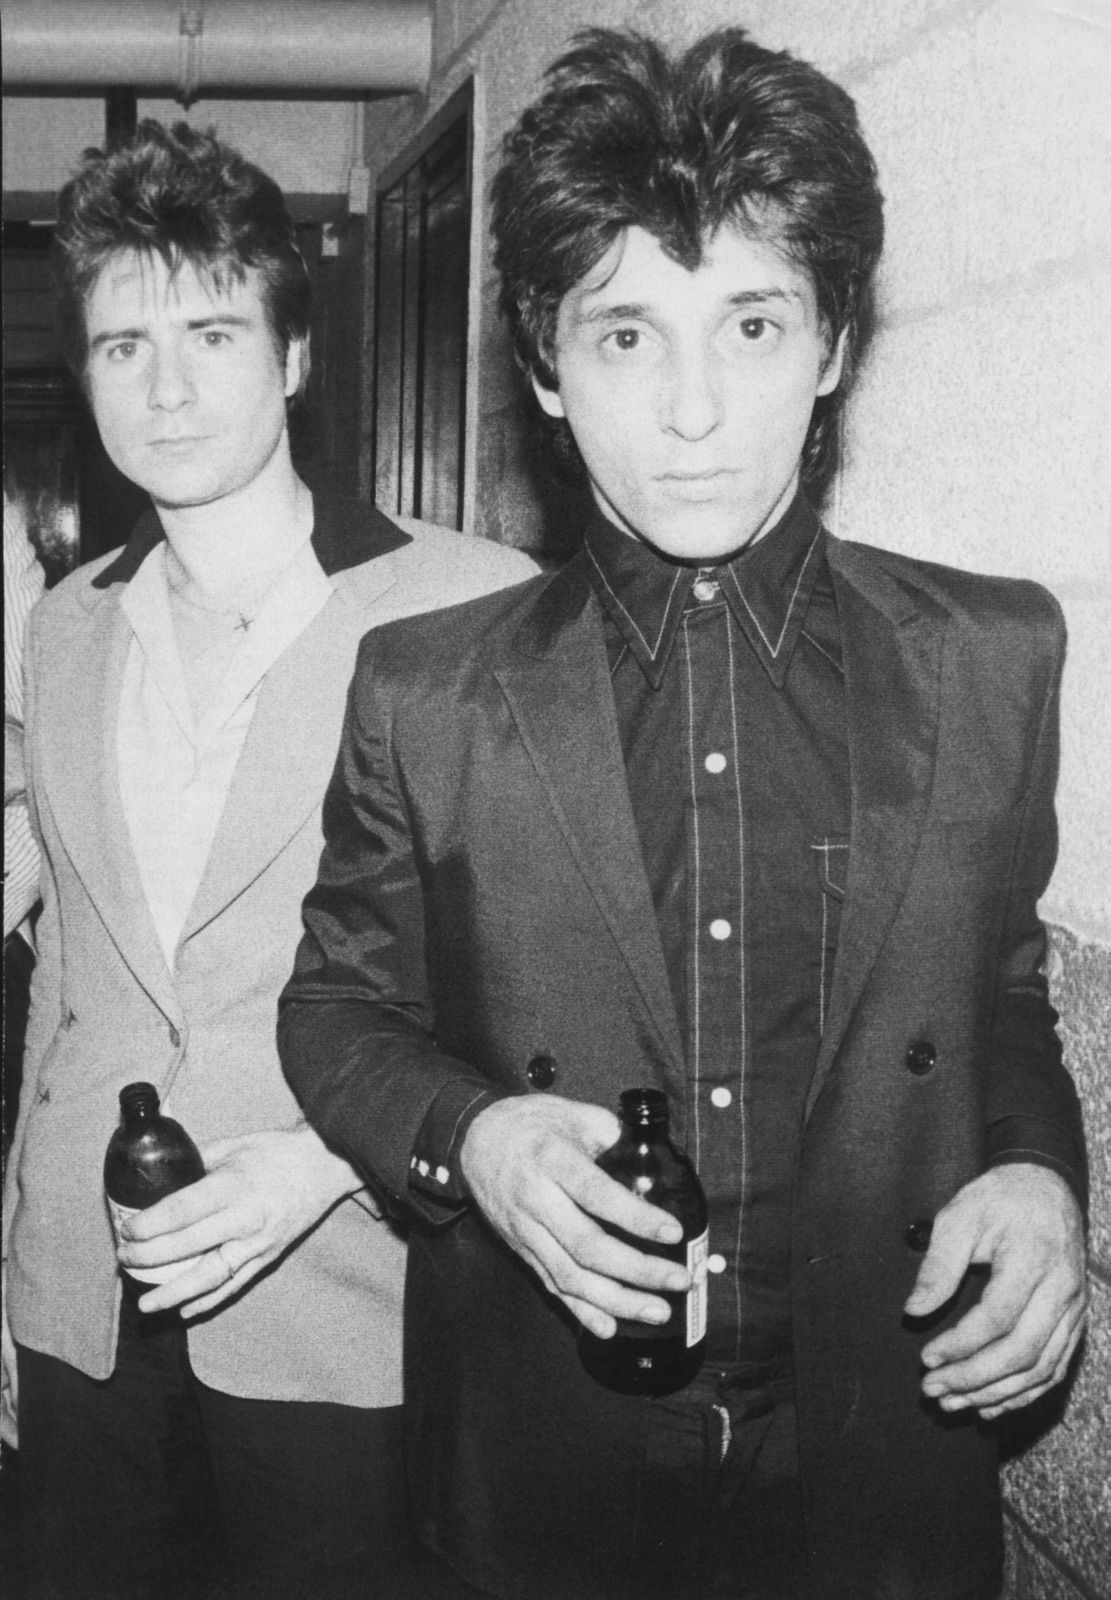 Johnny Thunders and Jerry Nolan by Bob Gruen, 1976